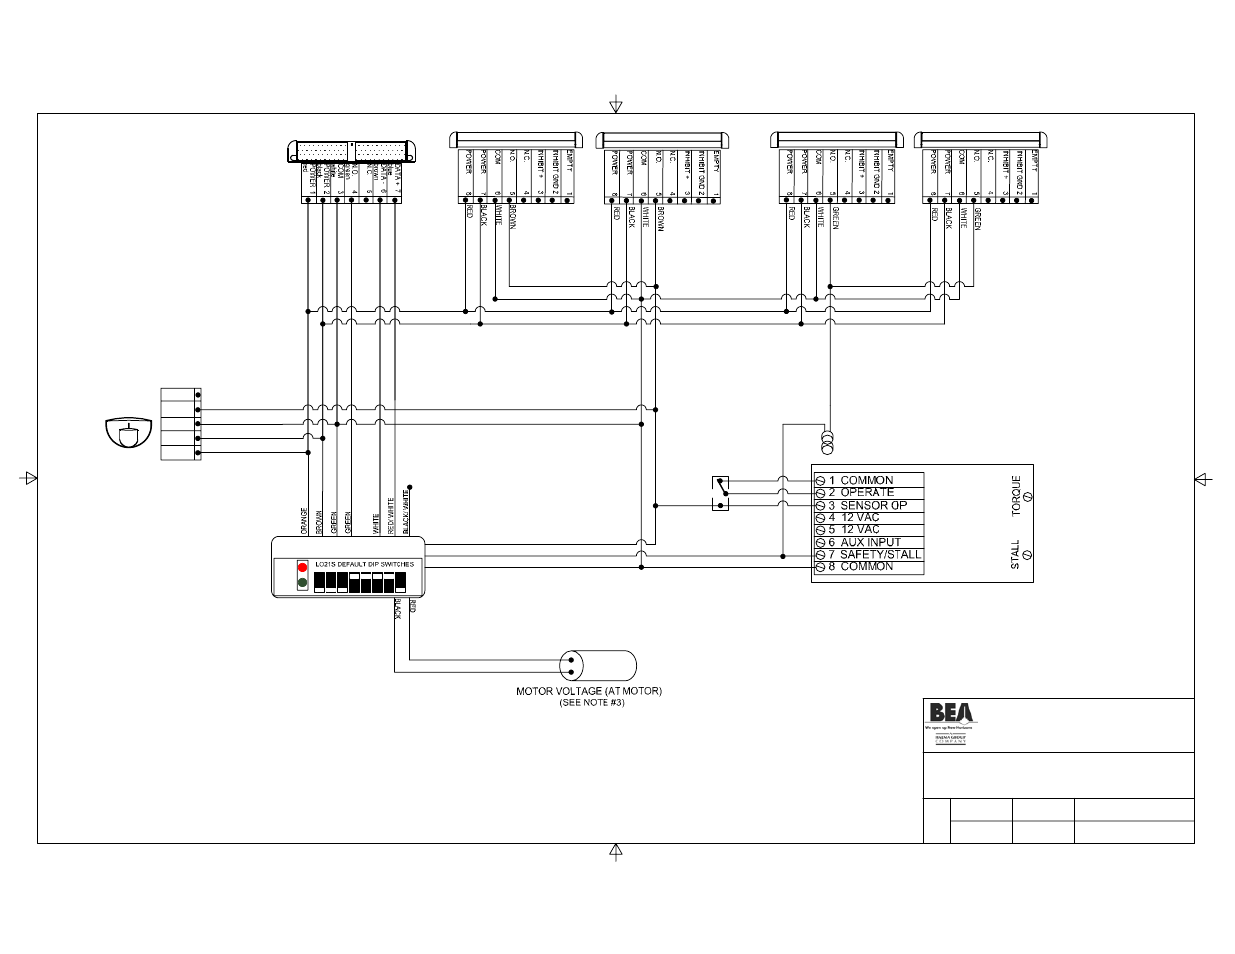 title, eagle, bodyguard | bea stanley dip switch i user manual | page 3 / 20